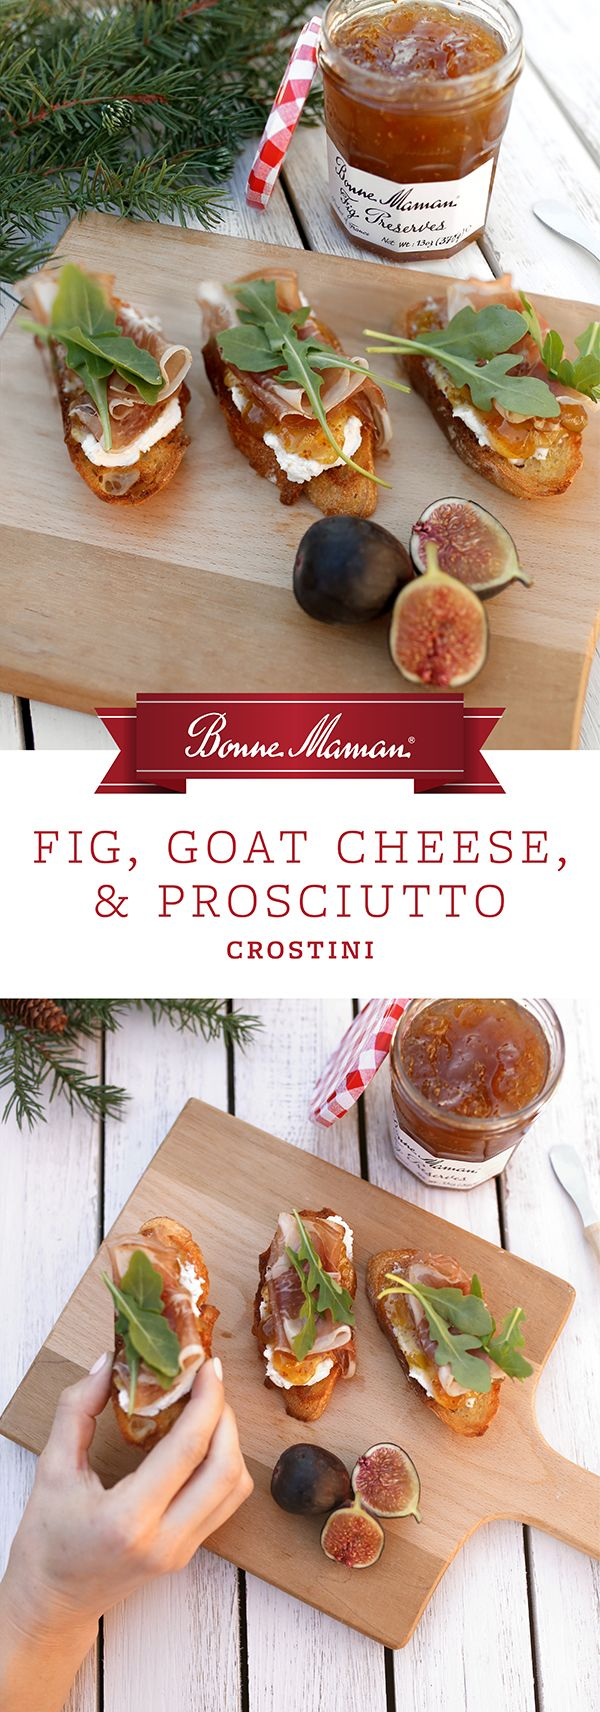 Fig, Goat Cheese, and Prosciutto Crostini- Both smooth and sweet, our Bonne Maman Fig Preserves bring a delightful layer to these tasty bites. With prosciutto, goat cheese, and peppery arugula on a toasted baguette, our crostinis are an easy yet elegant appetizer for Christmas Day.